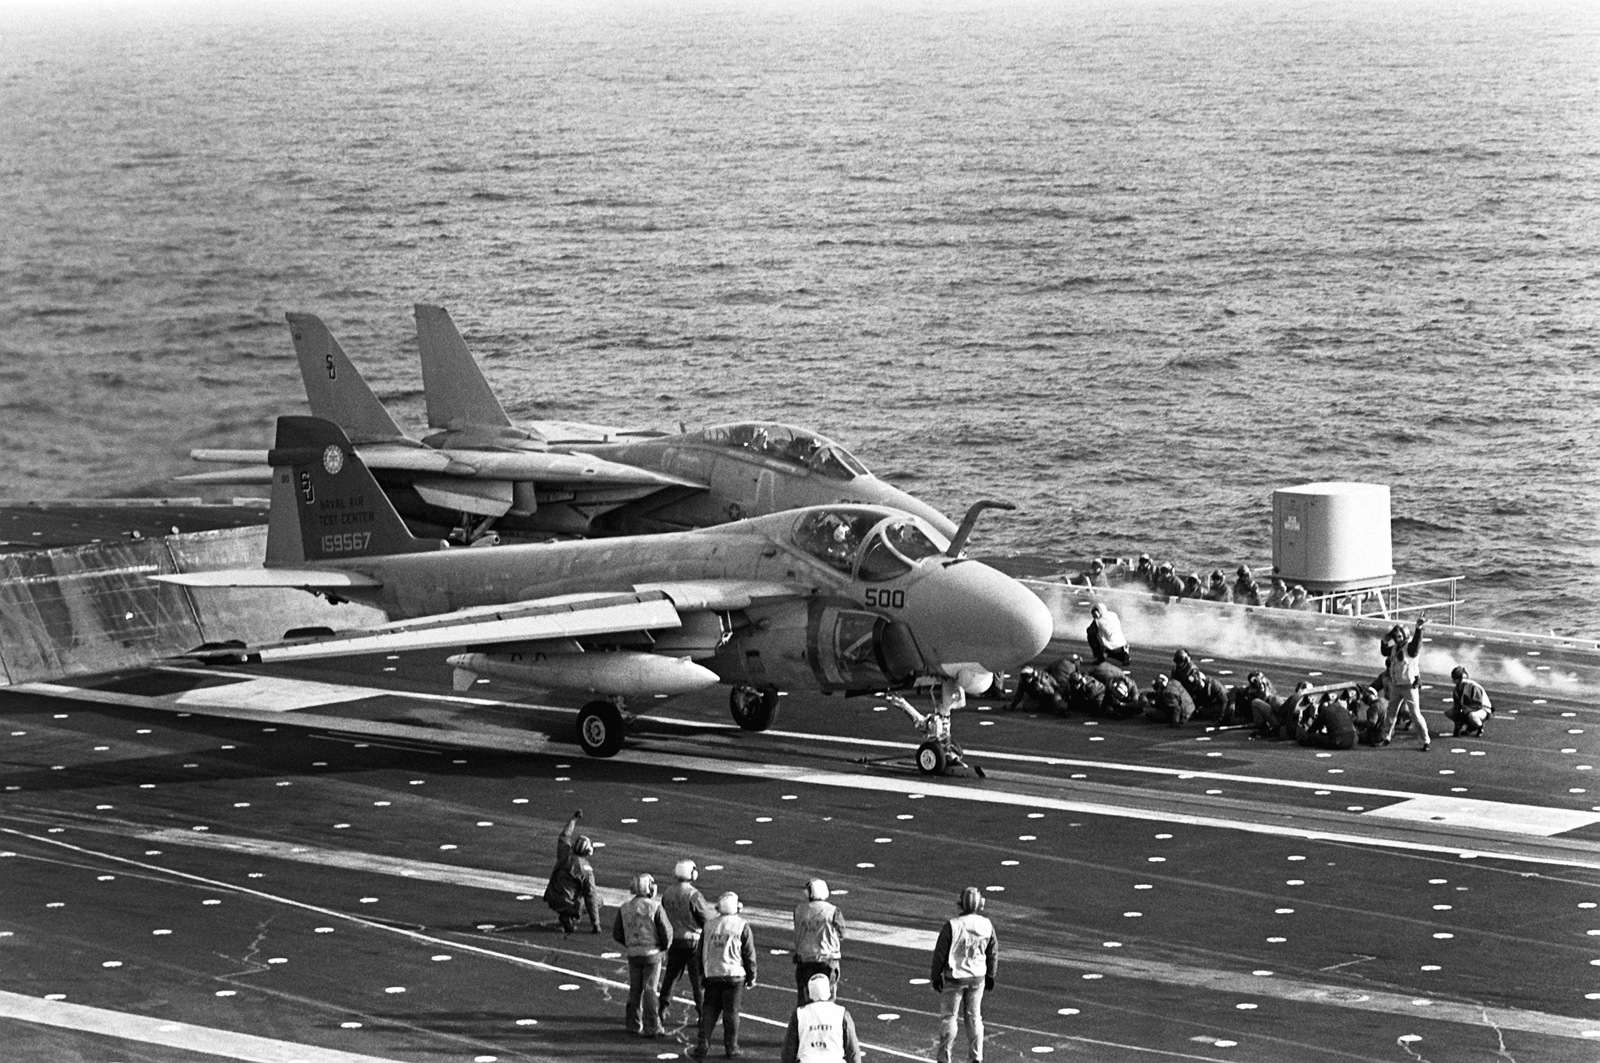 An A-6E Intruder aircraft of the Naval Air Test Center is launched from the flight deck of the aircraft carrier USS INDEPENDENCE (CV 62) as an F-14A Tomcat aircraft stands by